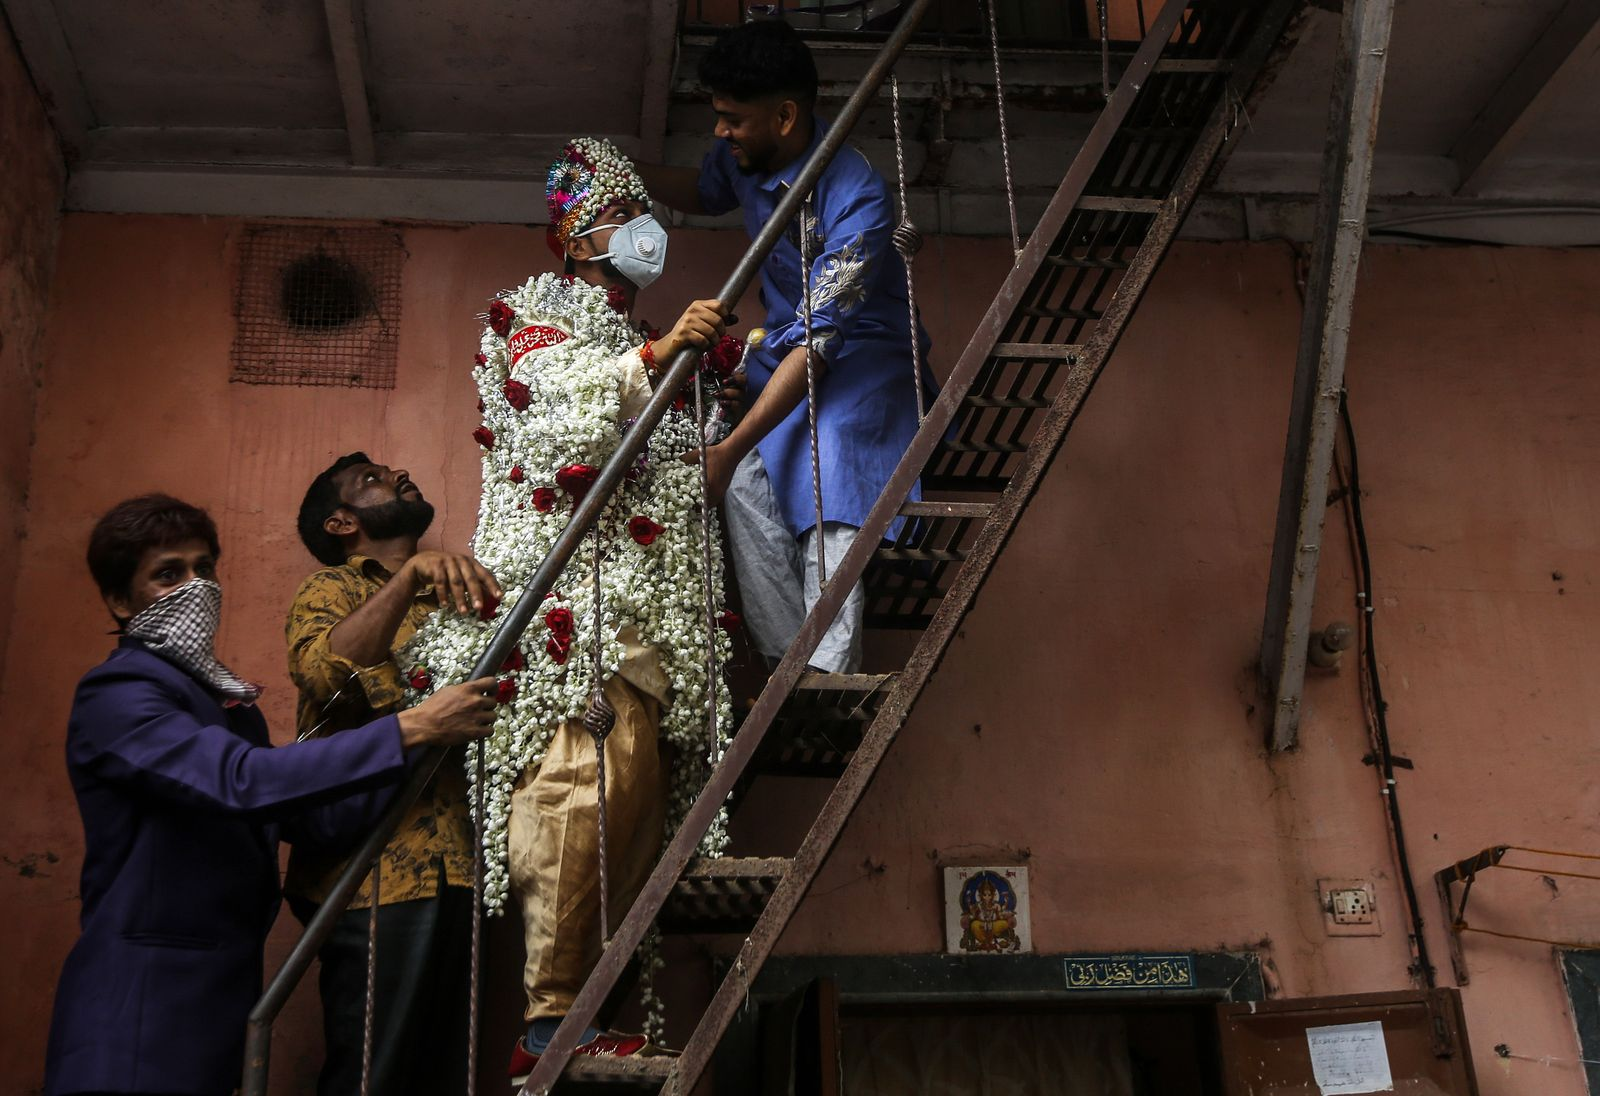 Wedding during coronavirus pandemic in India, Mumbai - 06 Jul 2020